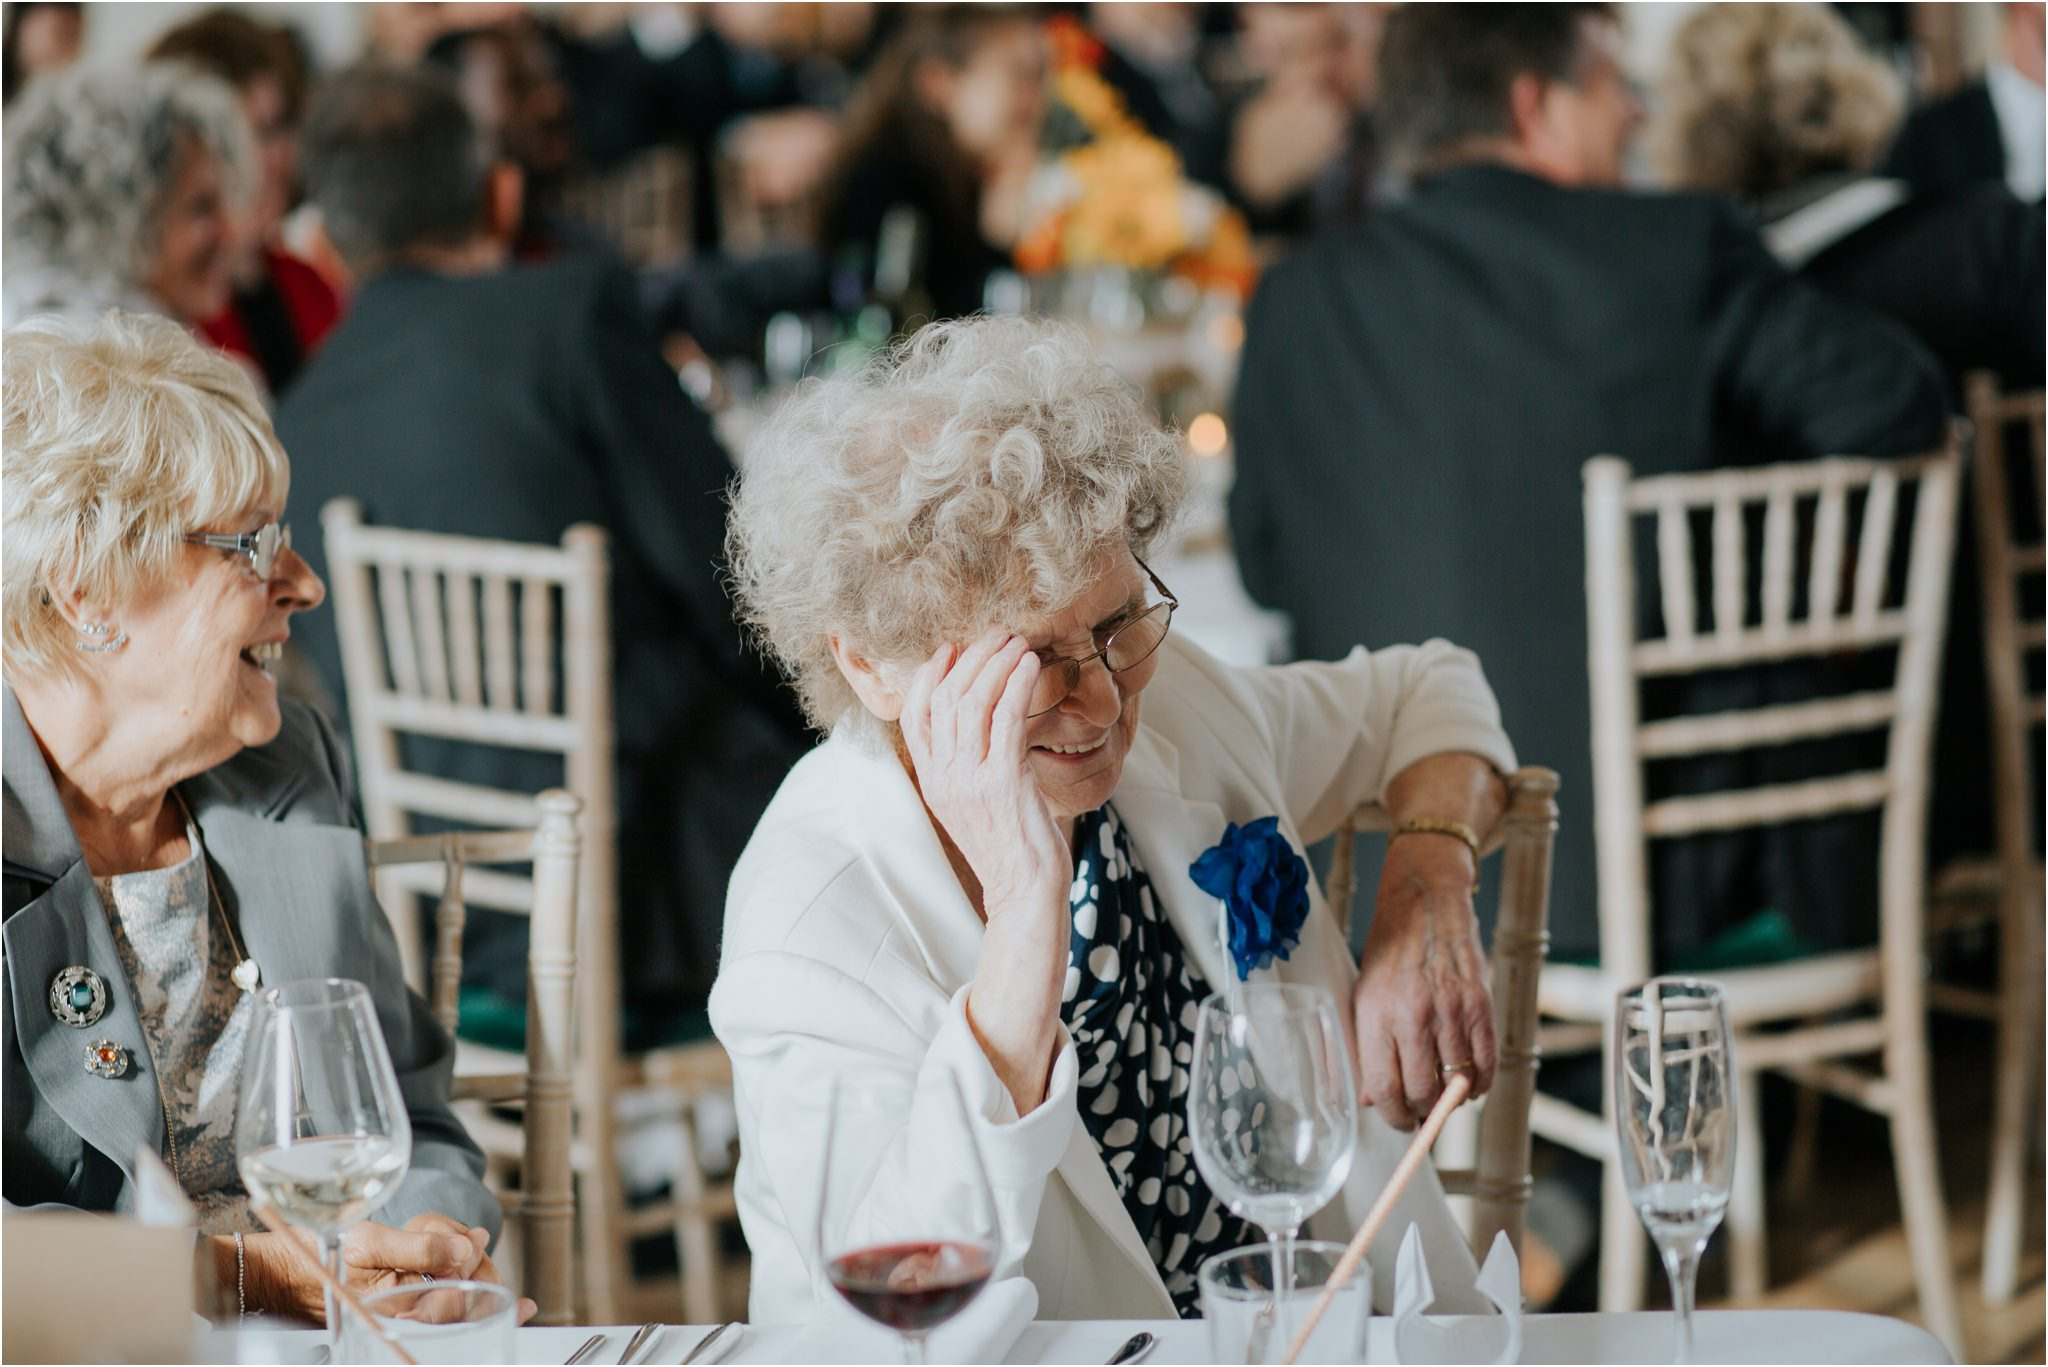 Photography 78 - Glasgow Wedding Photographer - Fraser Thirza - Killearn Village Hall - Three Sisters Bake Wedding_0130.jpg